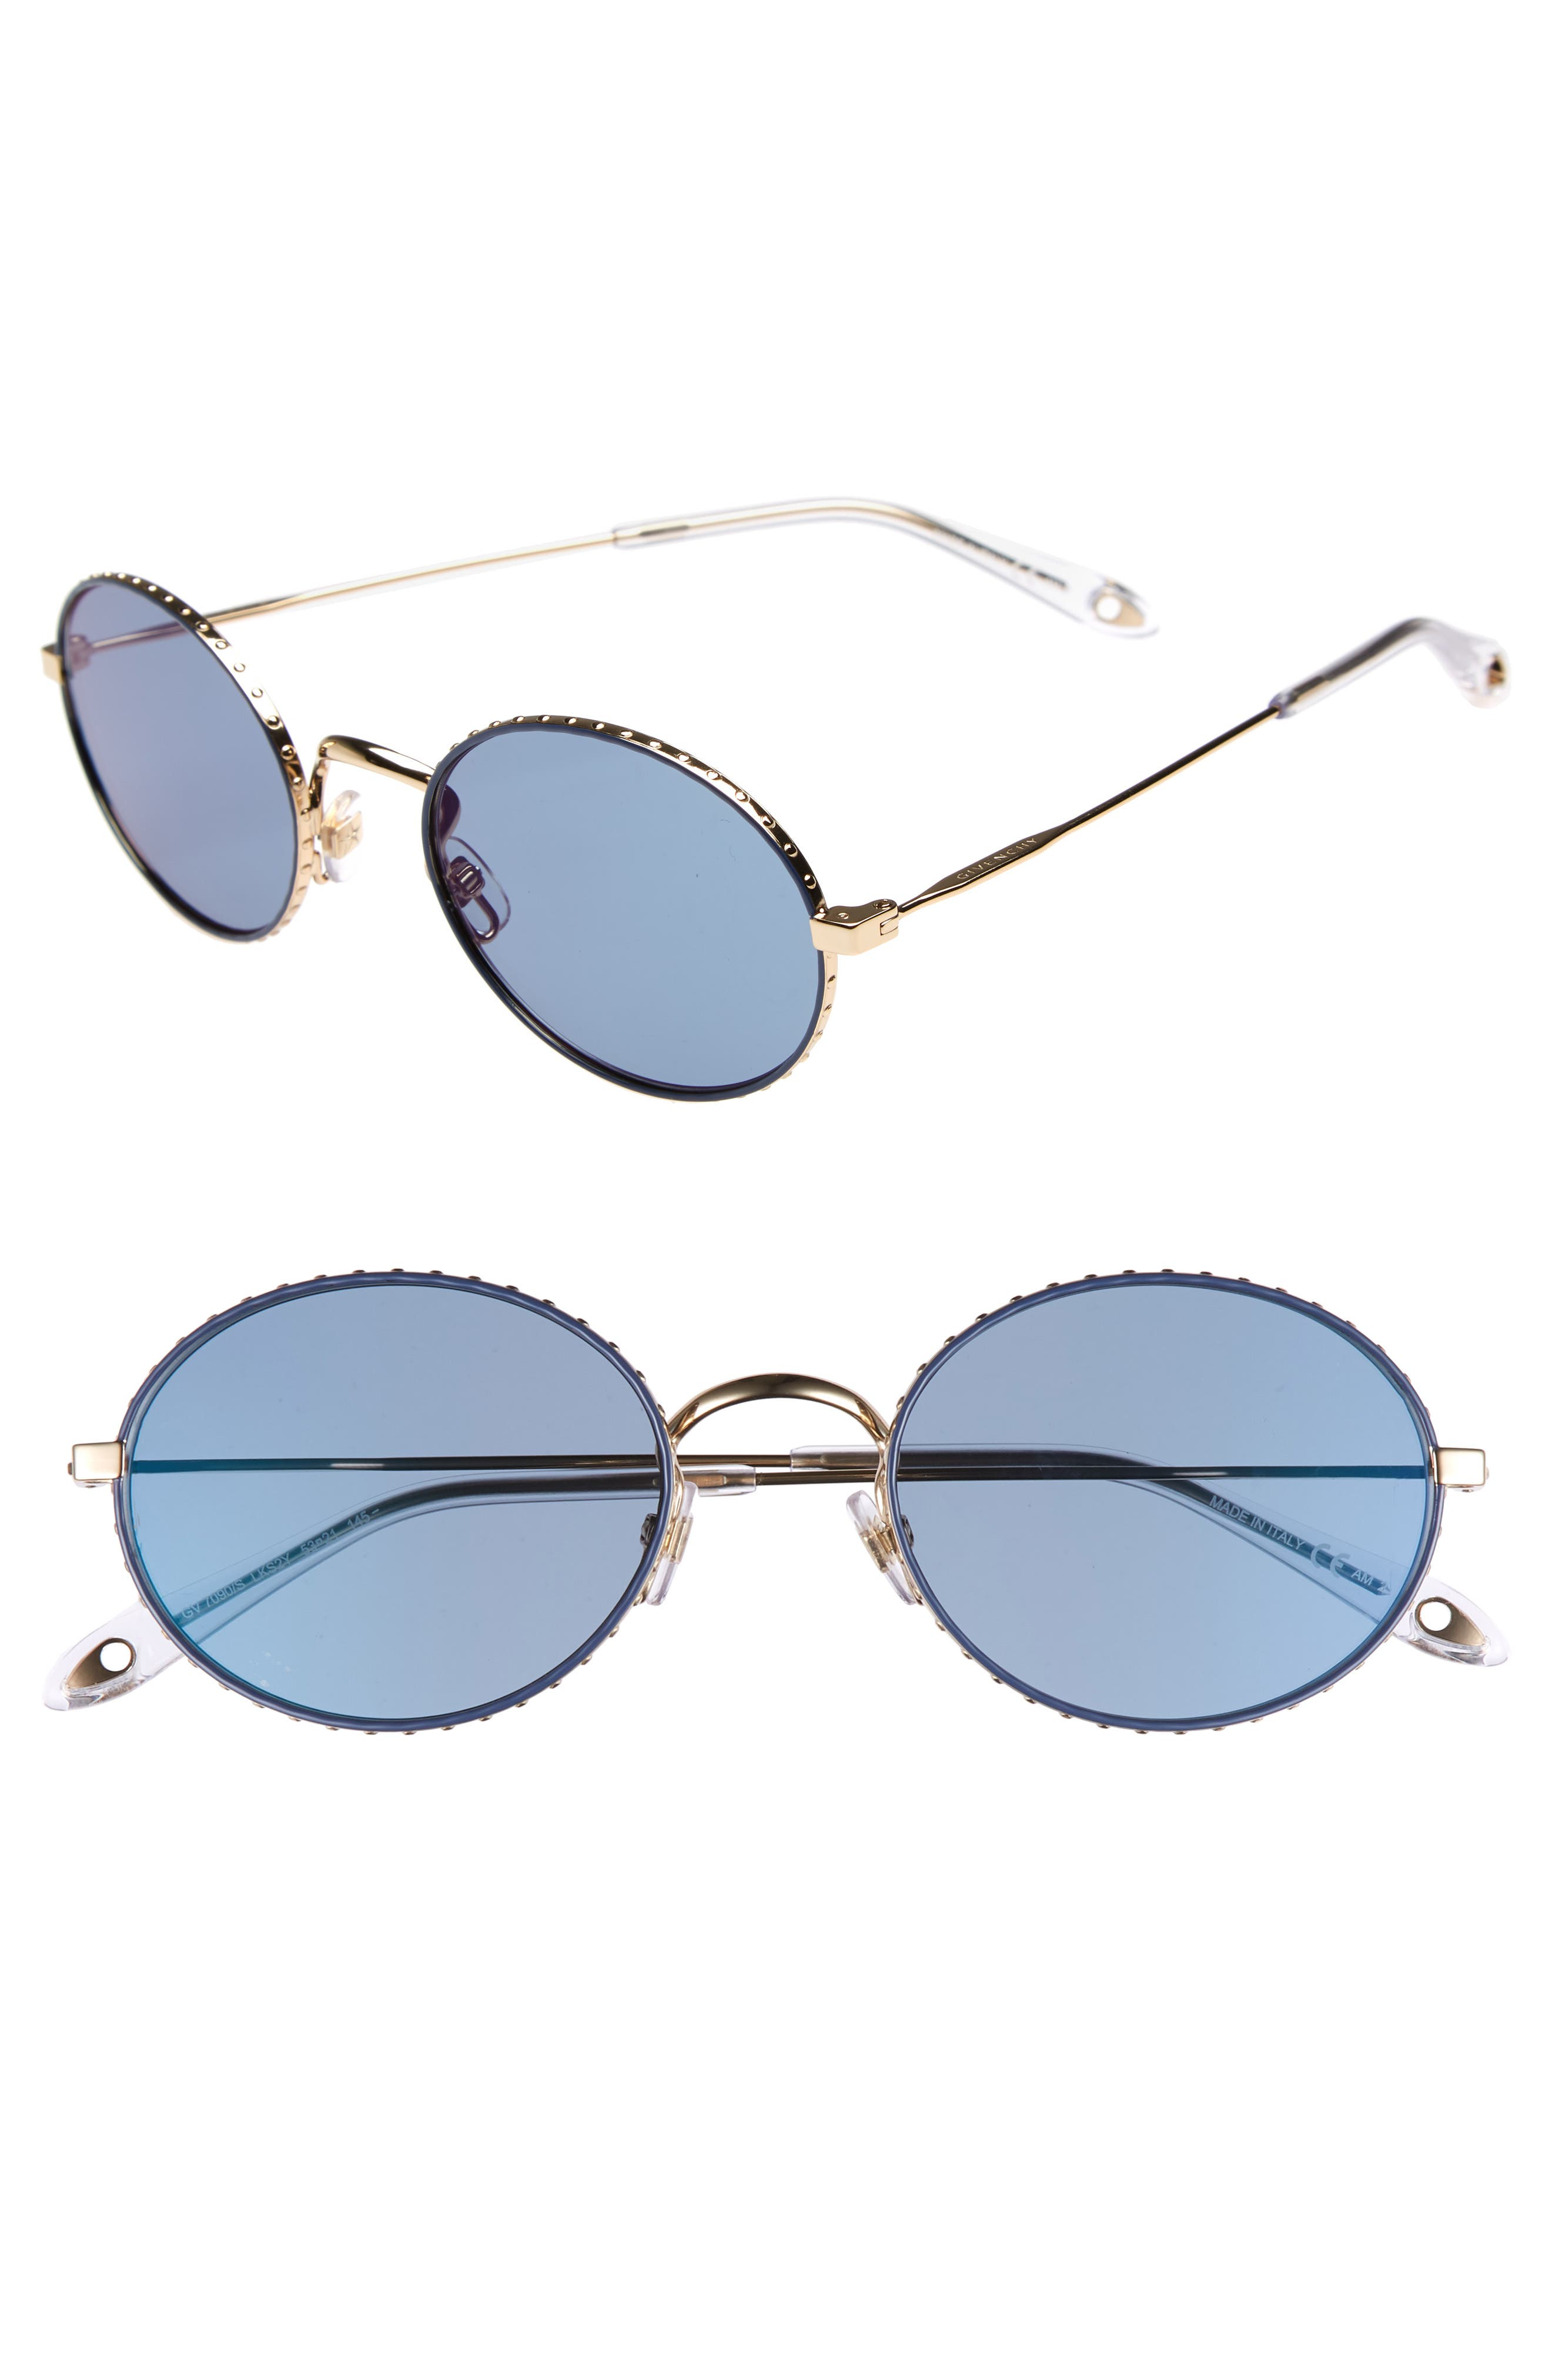 Givenchy 53mm Oval Sunglasses